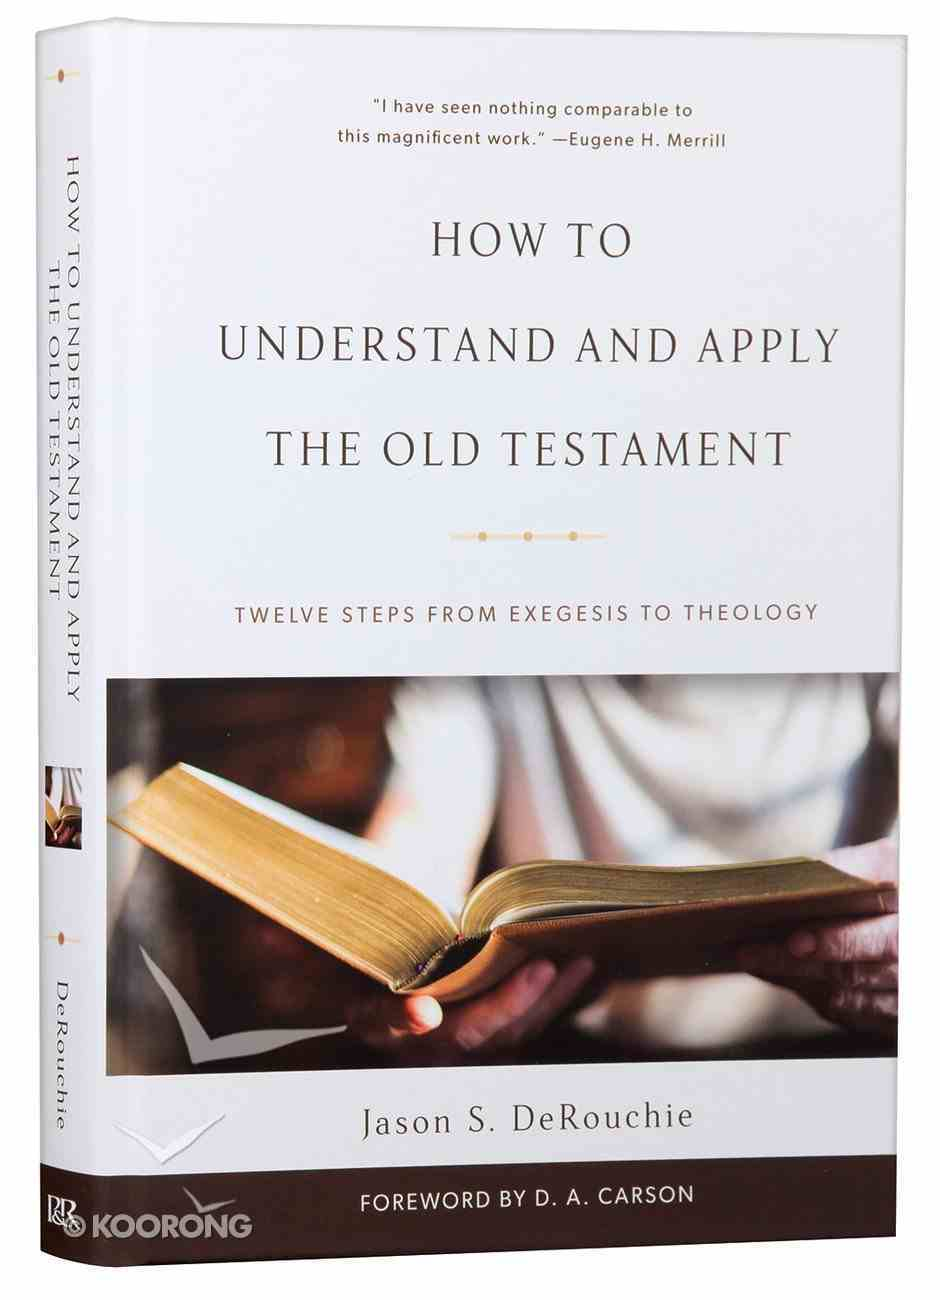 How to Understand and Apply the Old Testament: Twelve Steps From Exegesis to Theology Hardback